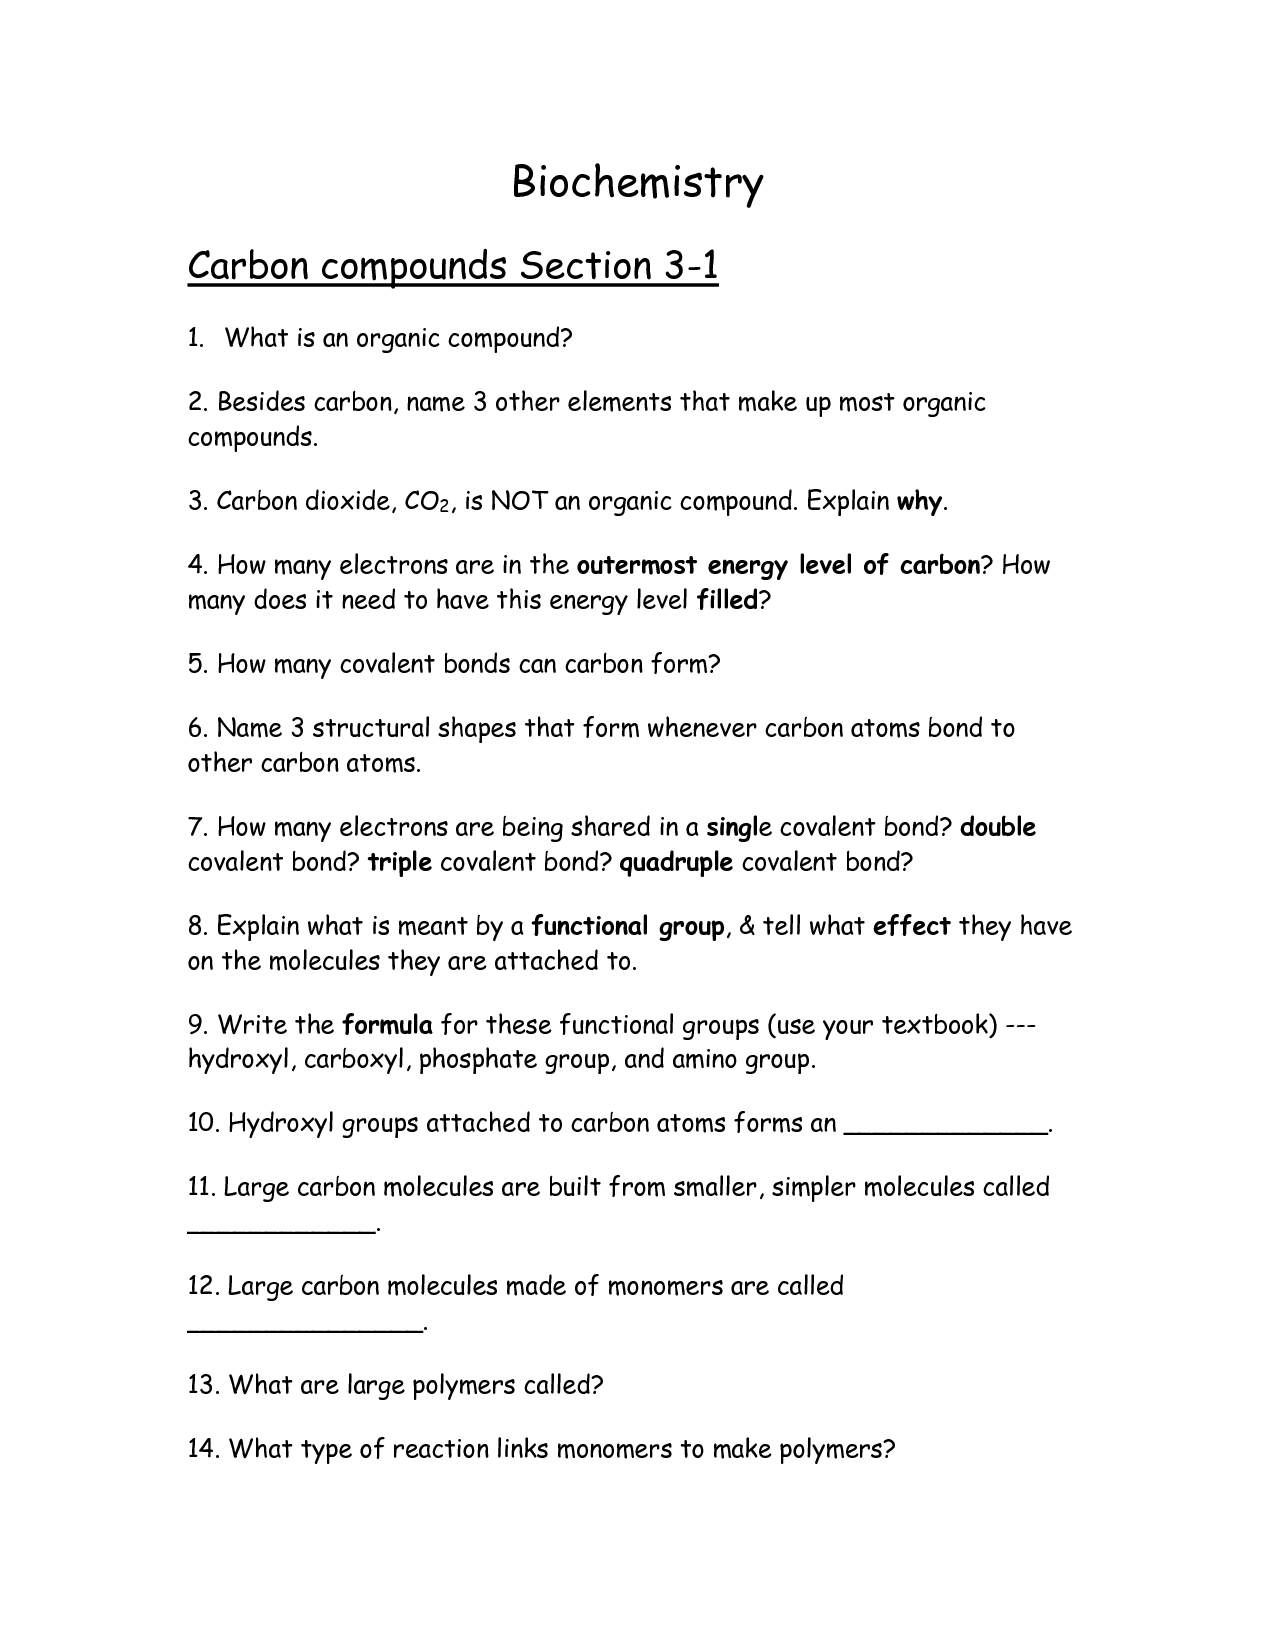 35 Carbon Compounds Worksheet Answers